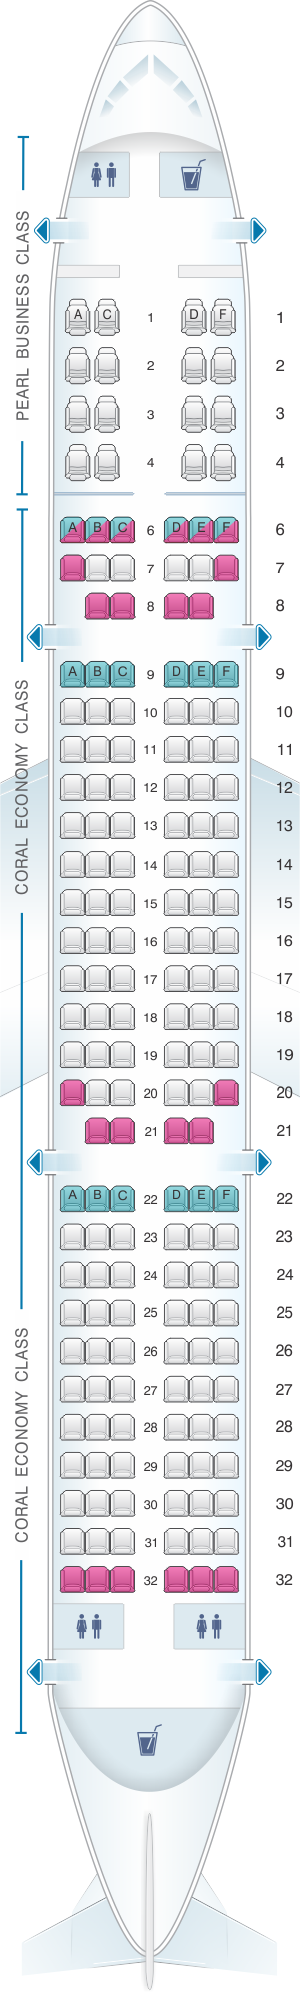 Seat map for Etihad Airways Airbus A321 200